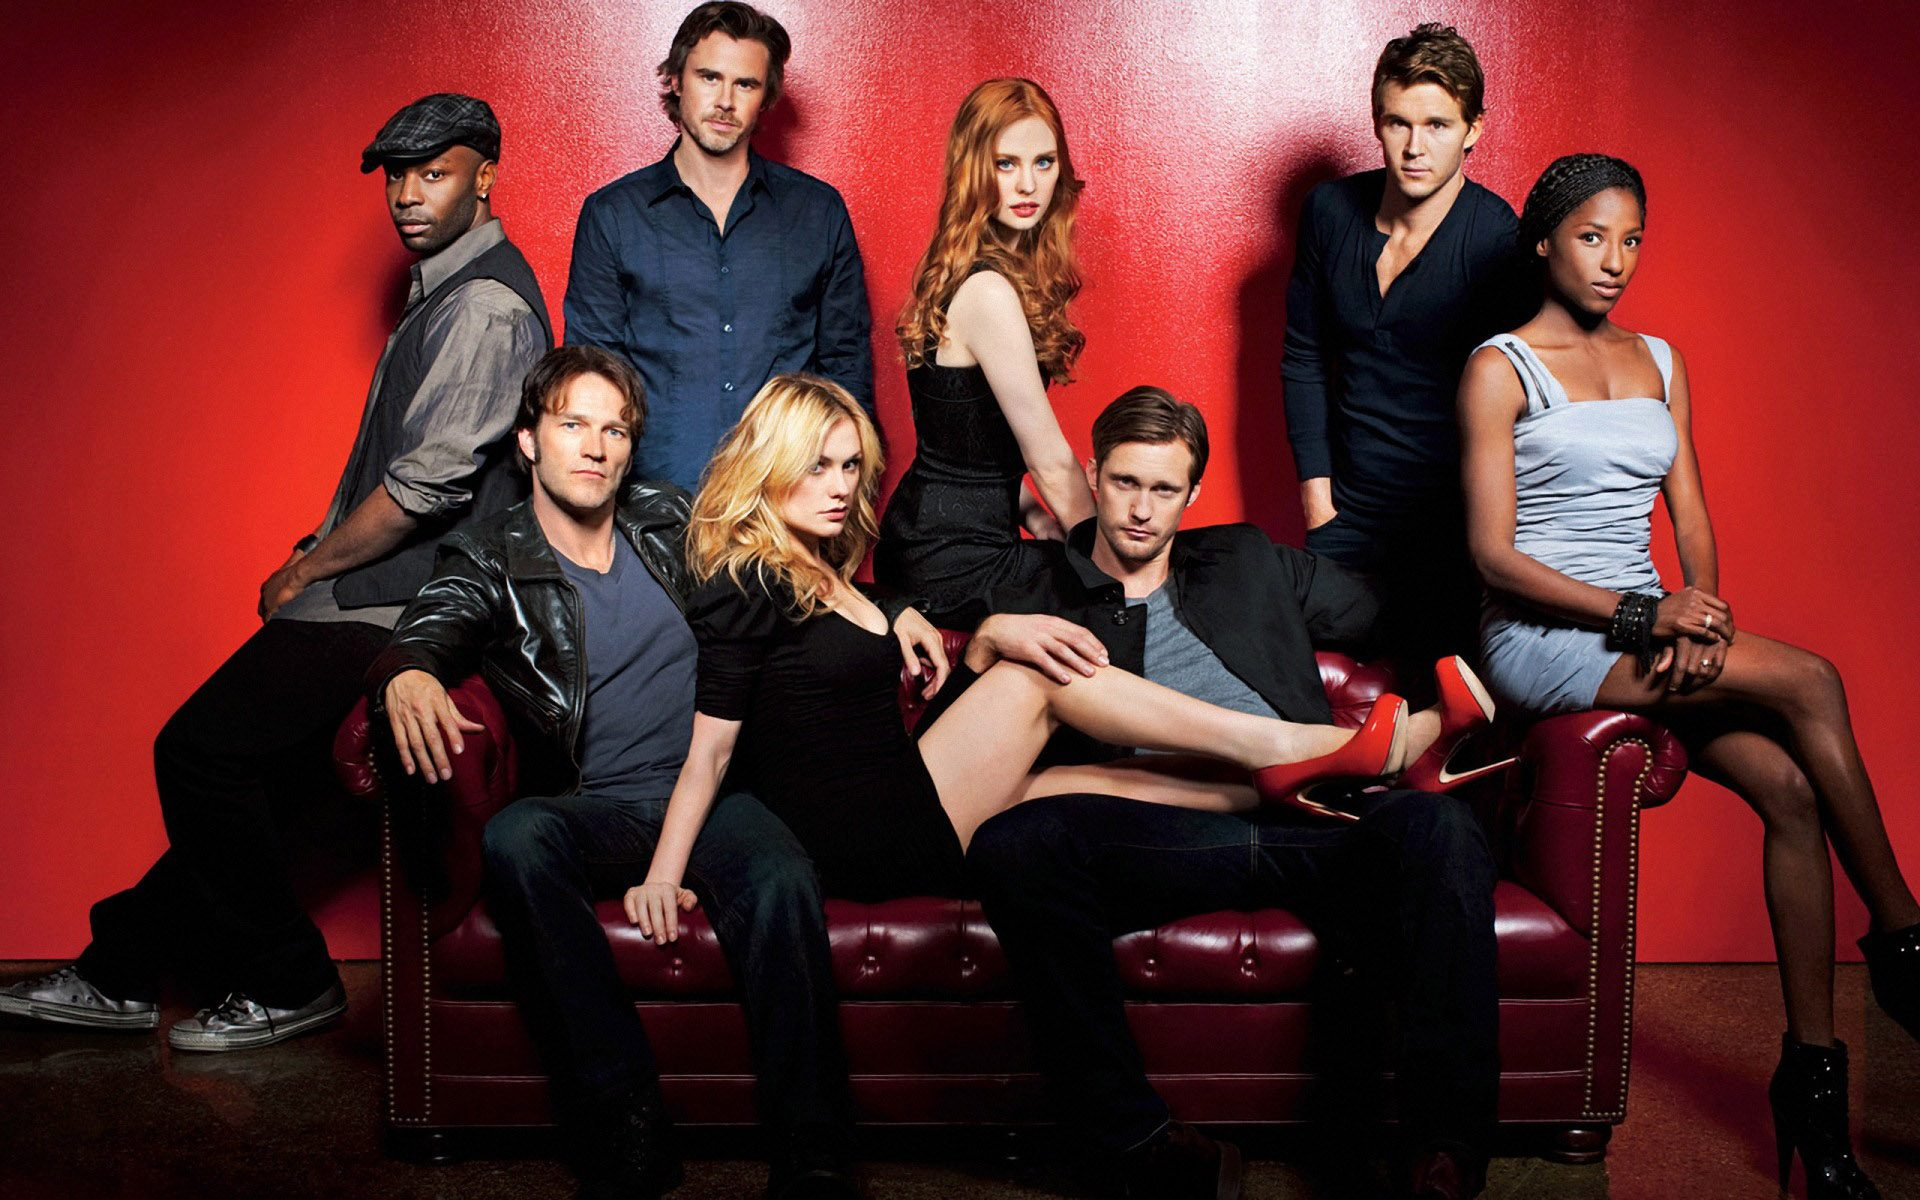 'True Blood' Gets Its Podcast Series From HBO Max